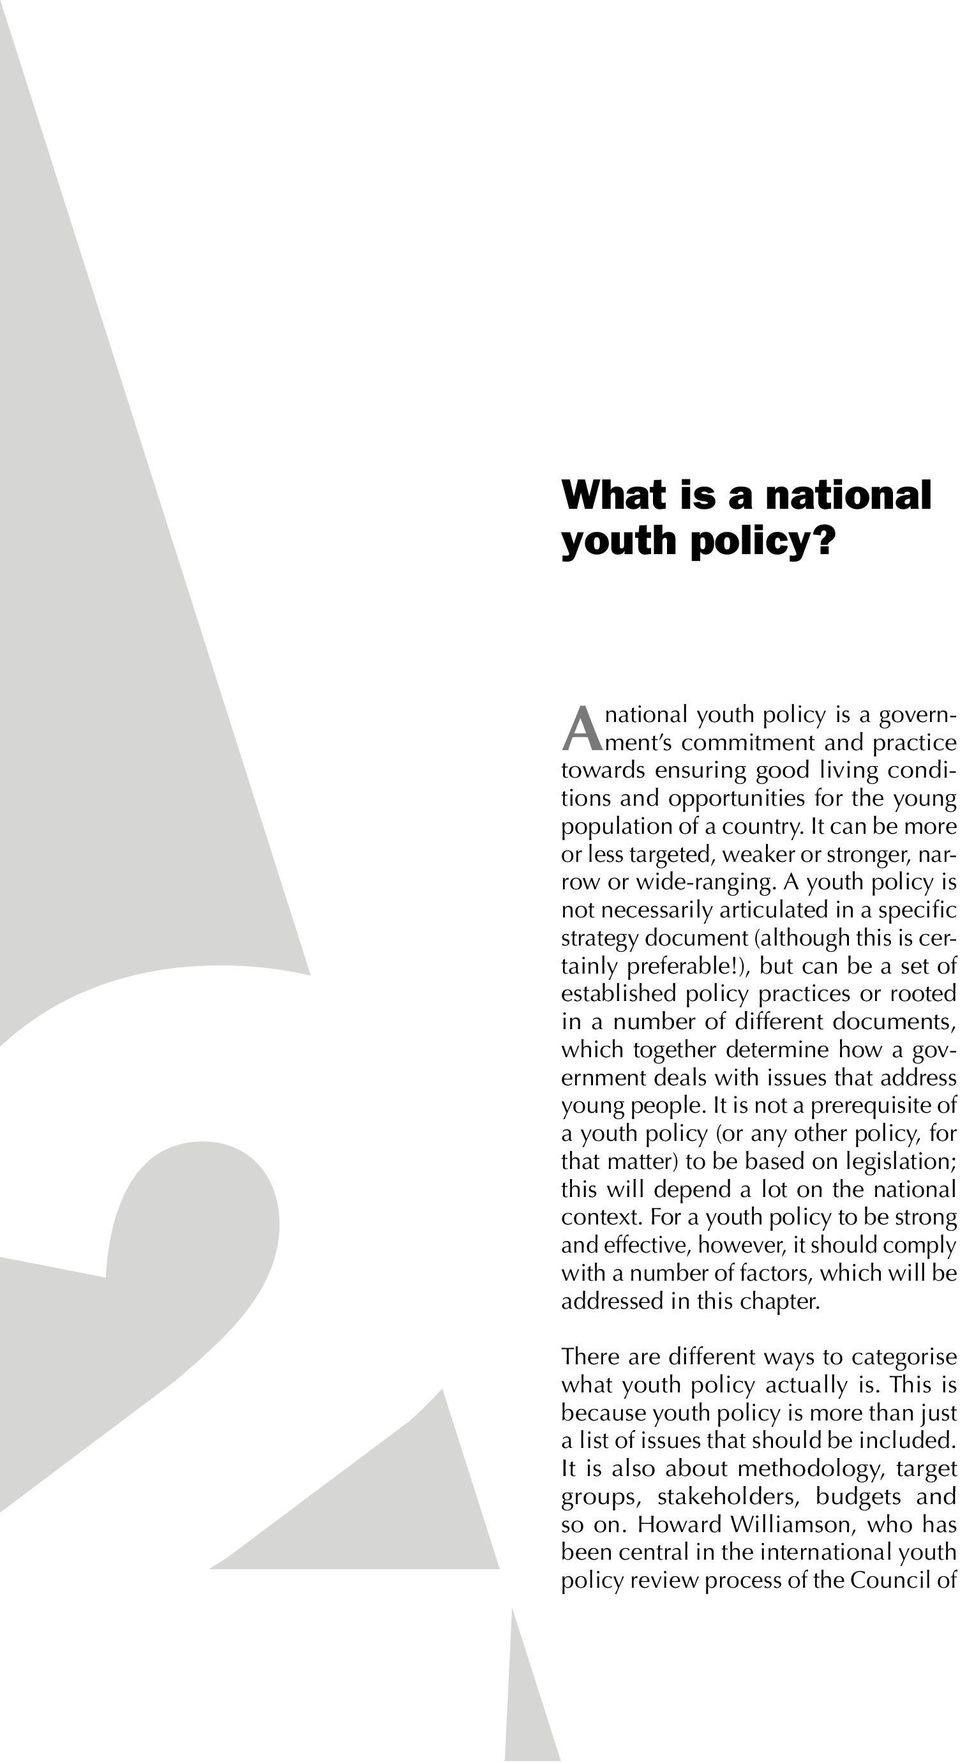 ), but can be a set of established policy practices or rooted in a number of different documents, which together determine how a government deals with issues that address young people.